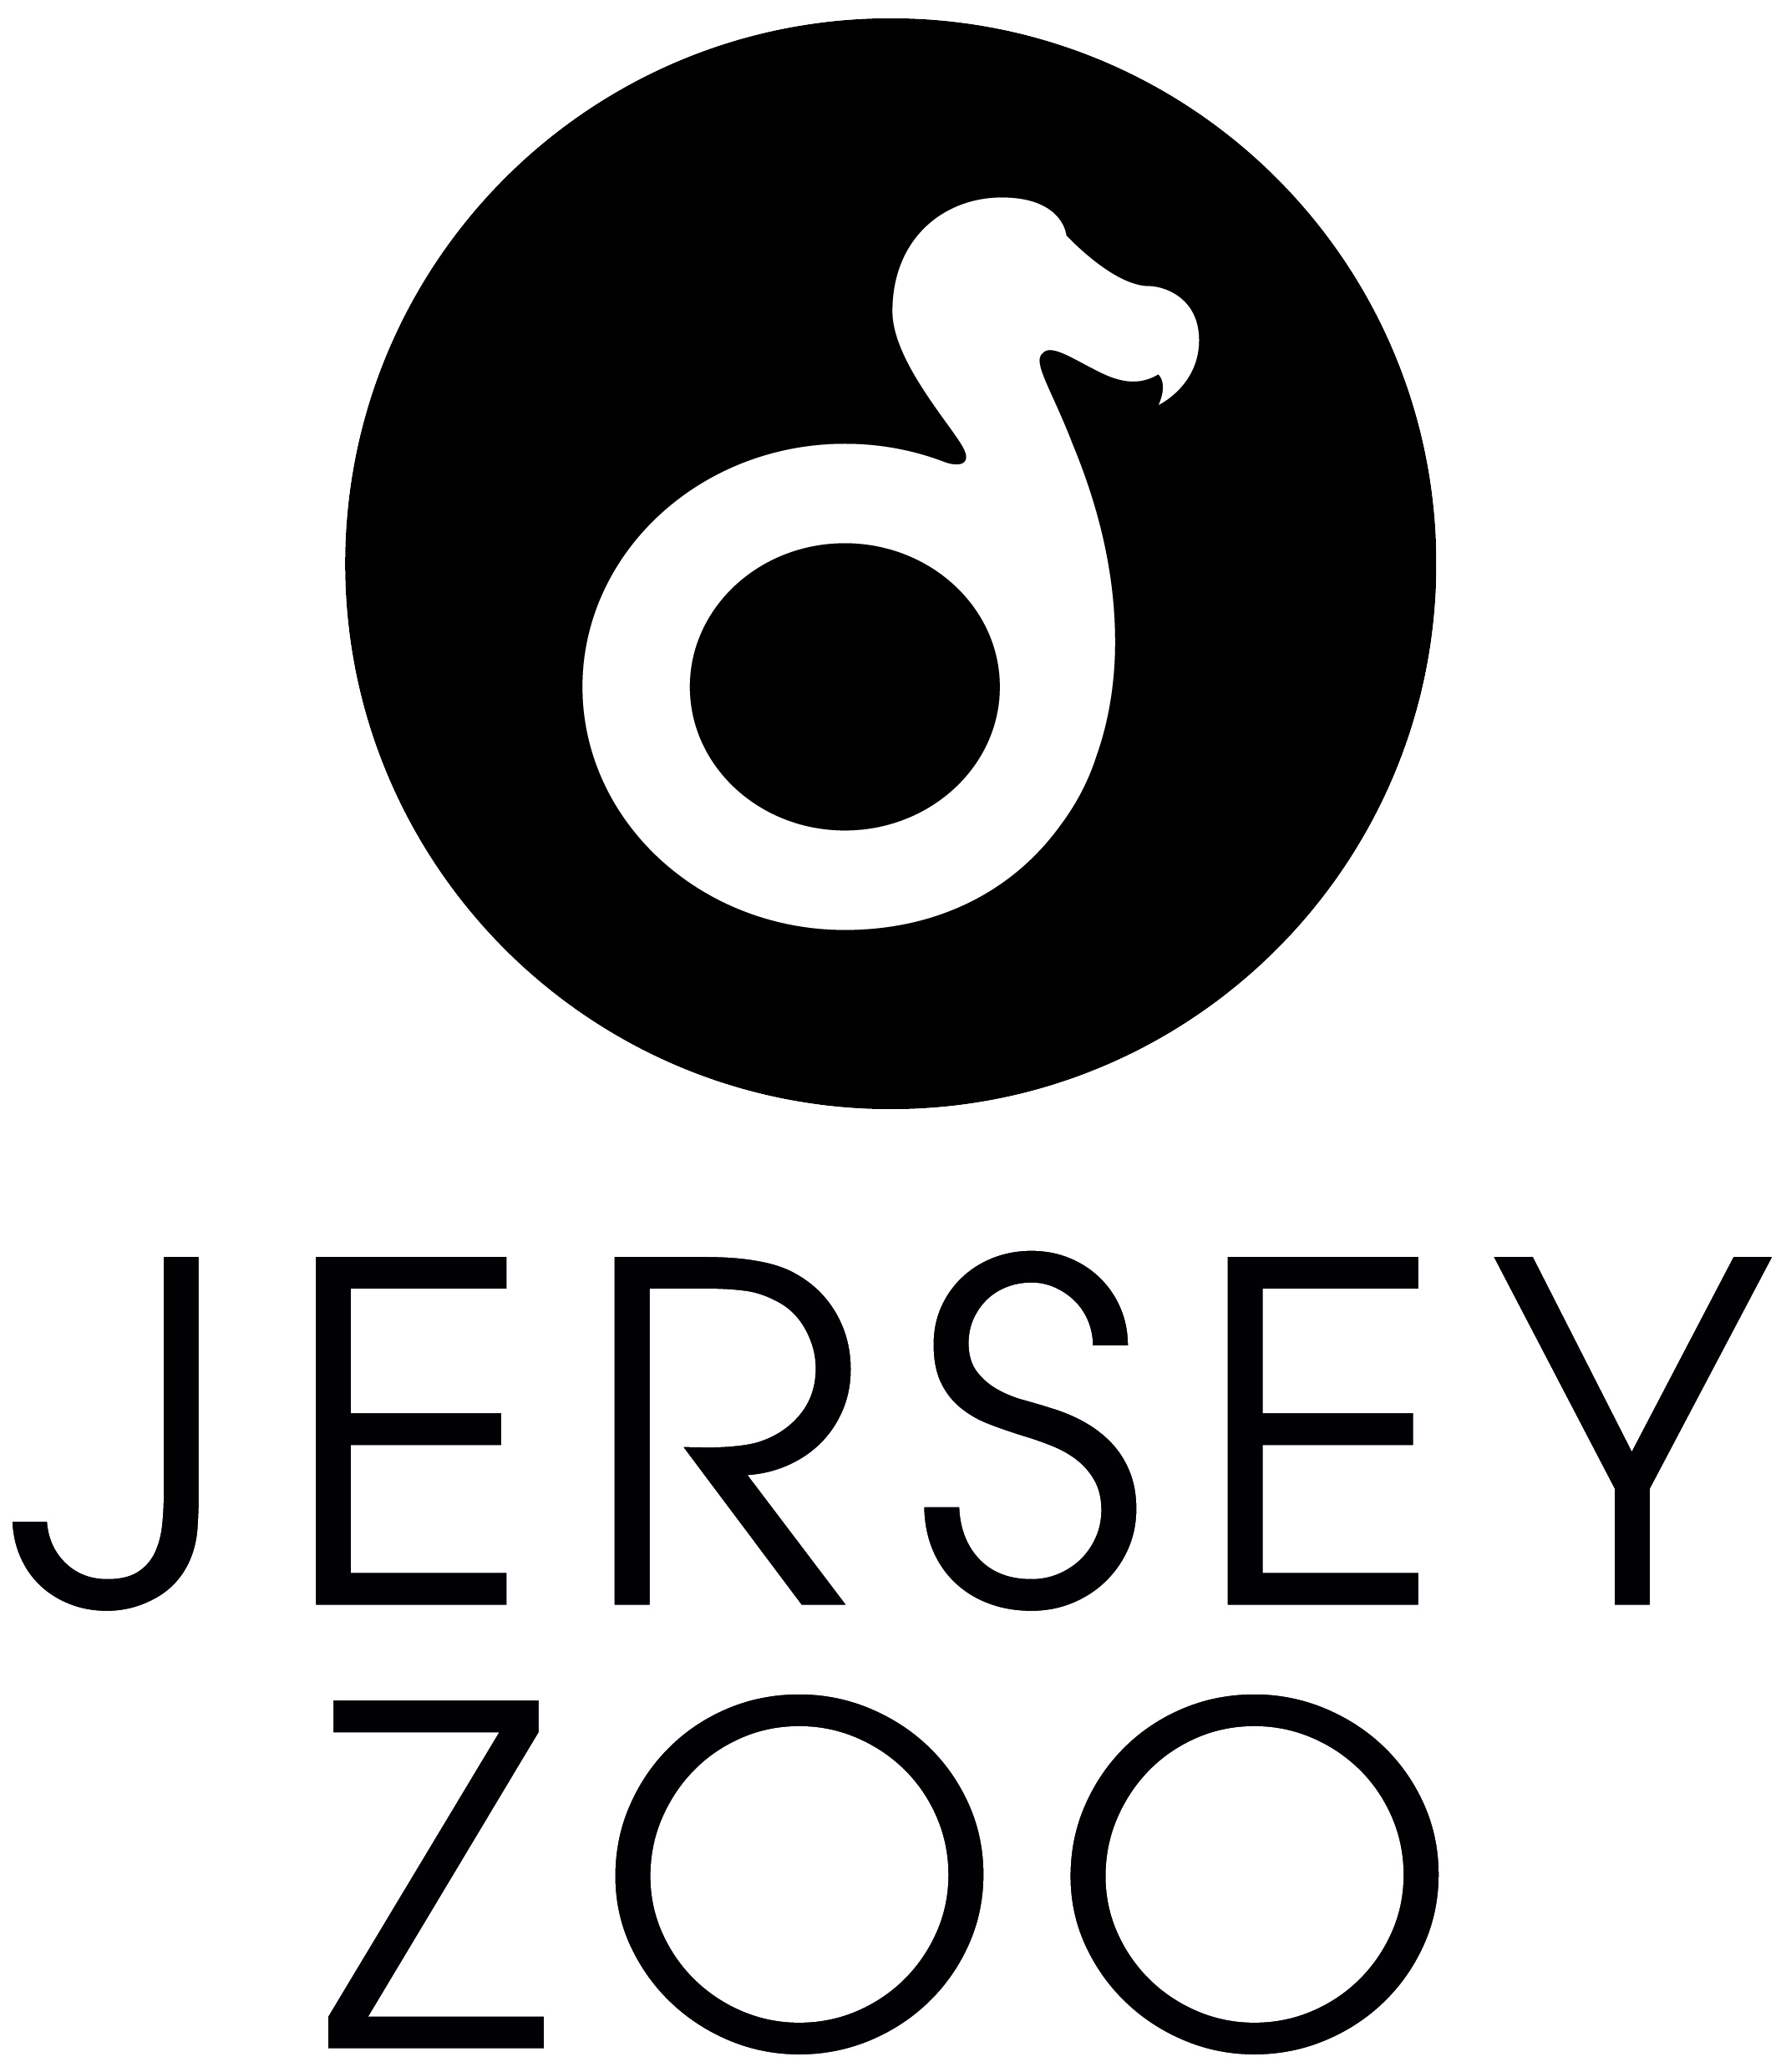 Jersey Zoo